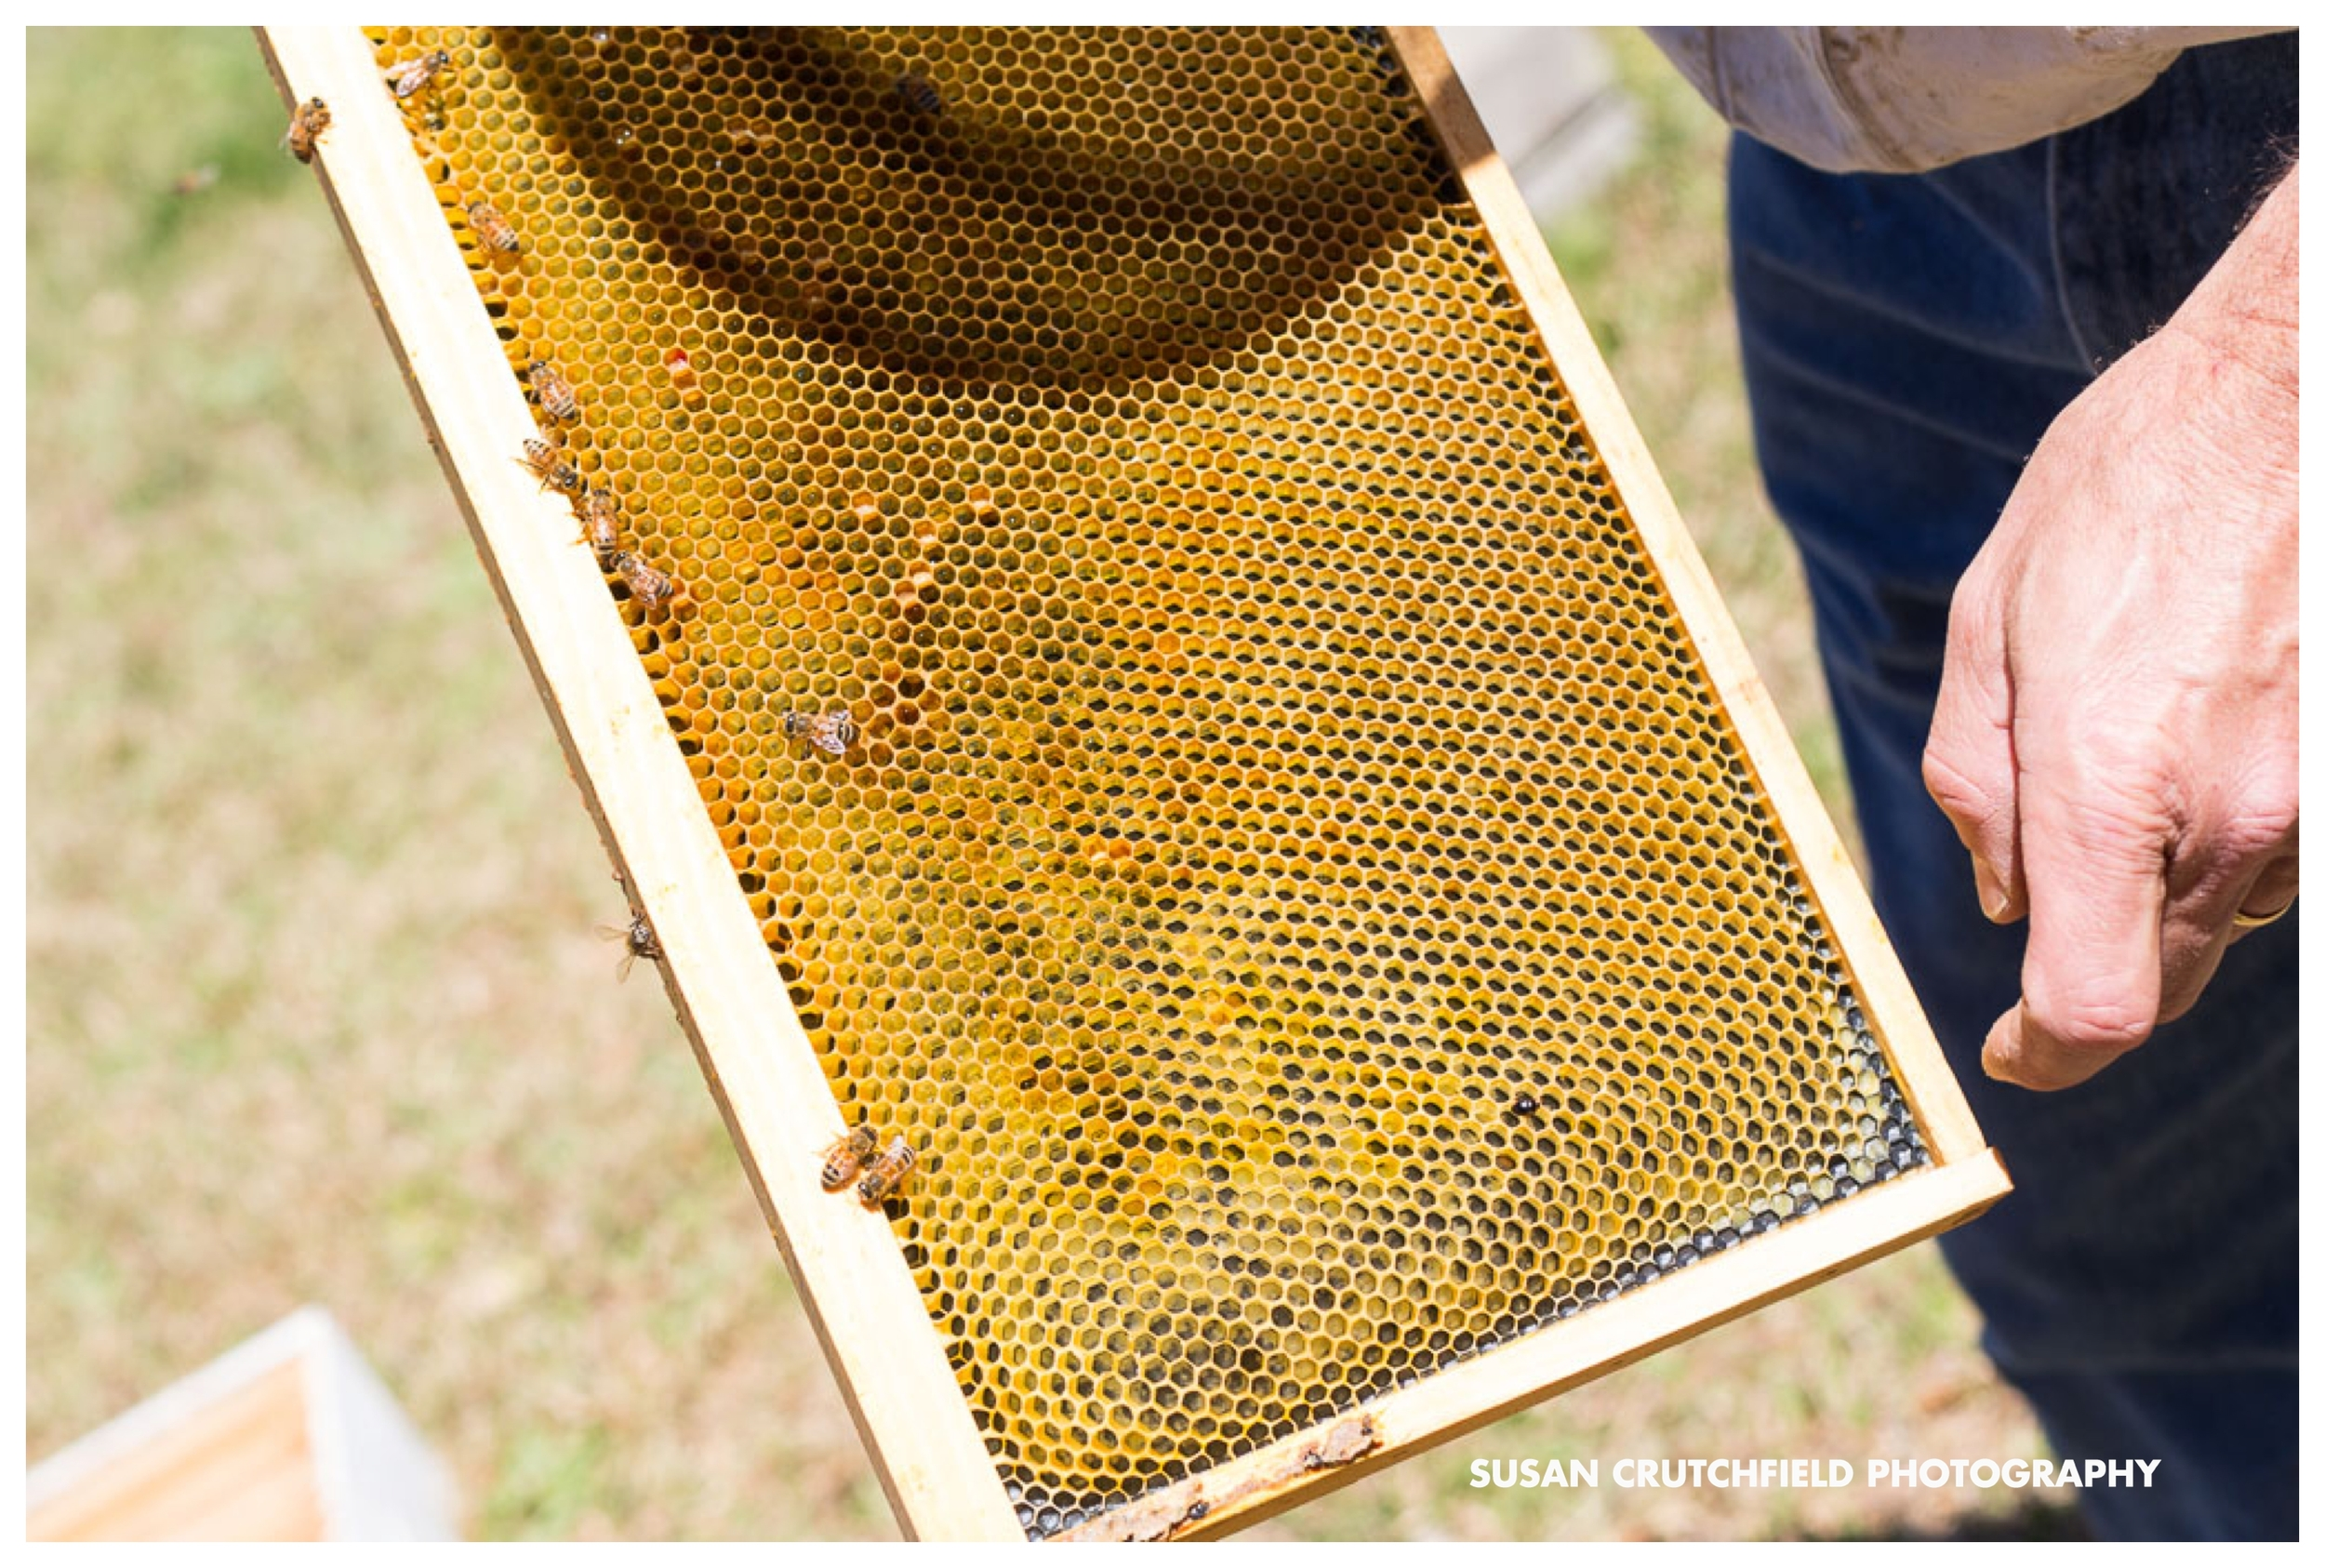 Sustainable Beekeeping in Georgia